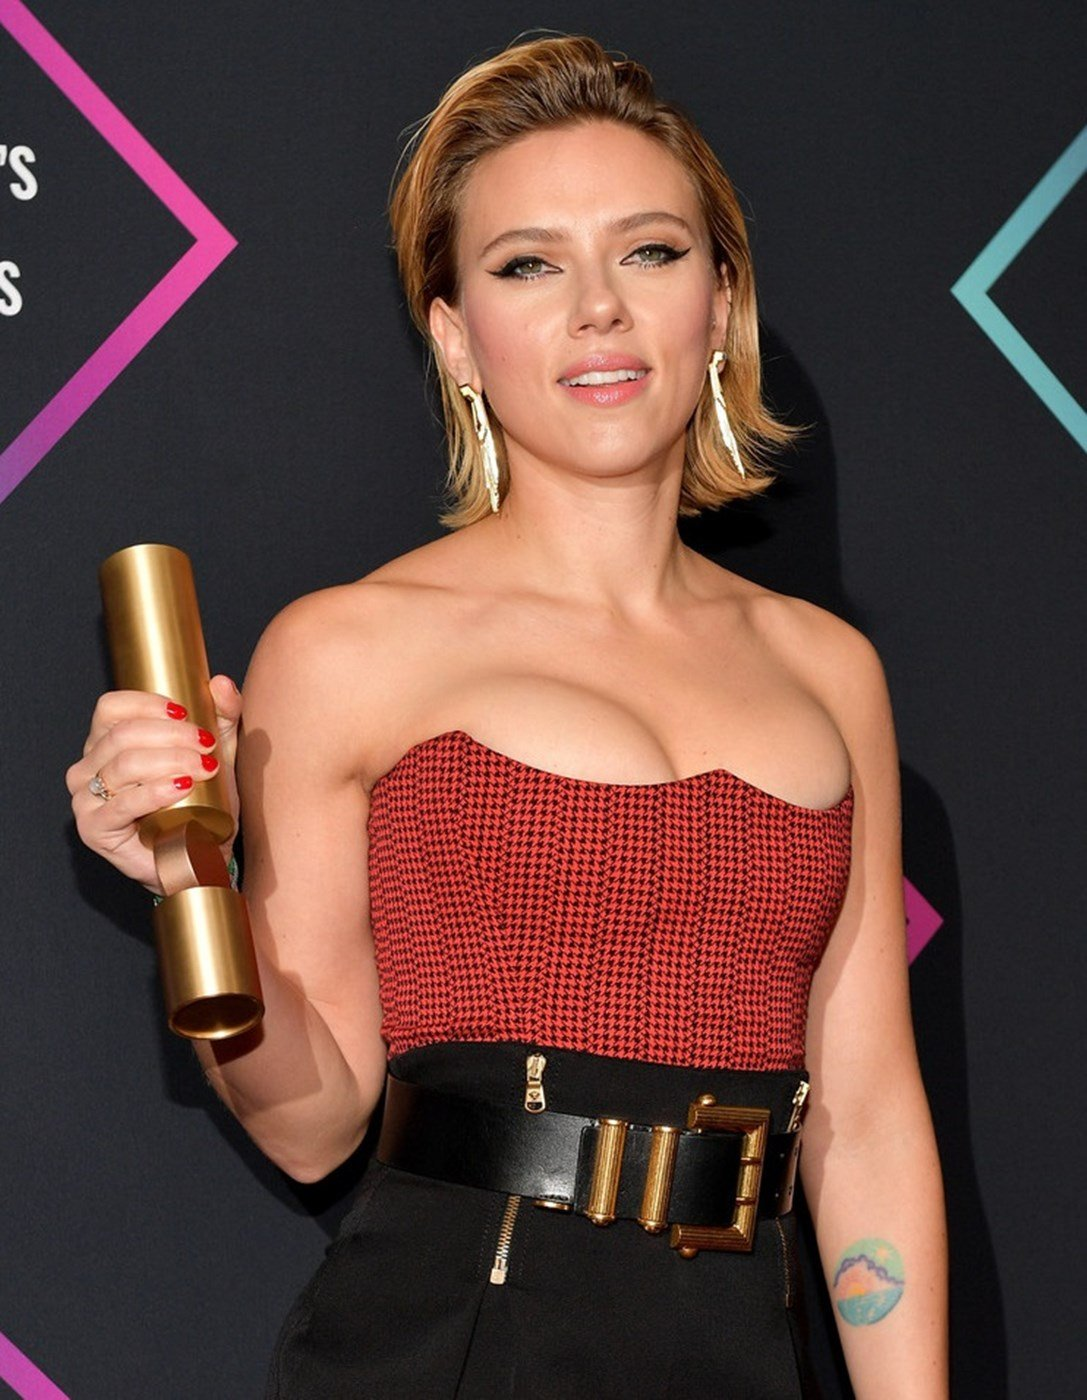 Scarlett Johansson With Her Boobs Pushed Up Fondling A